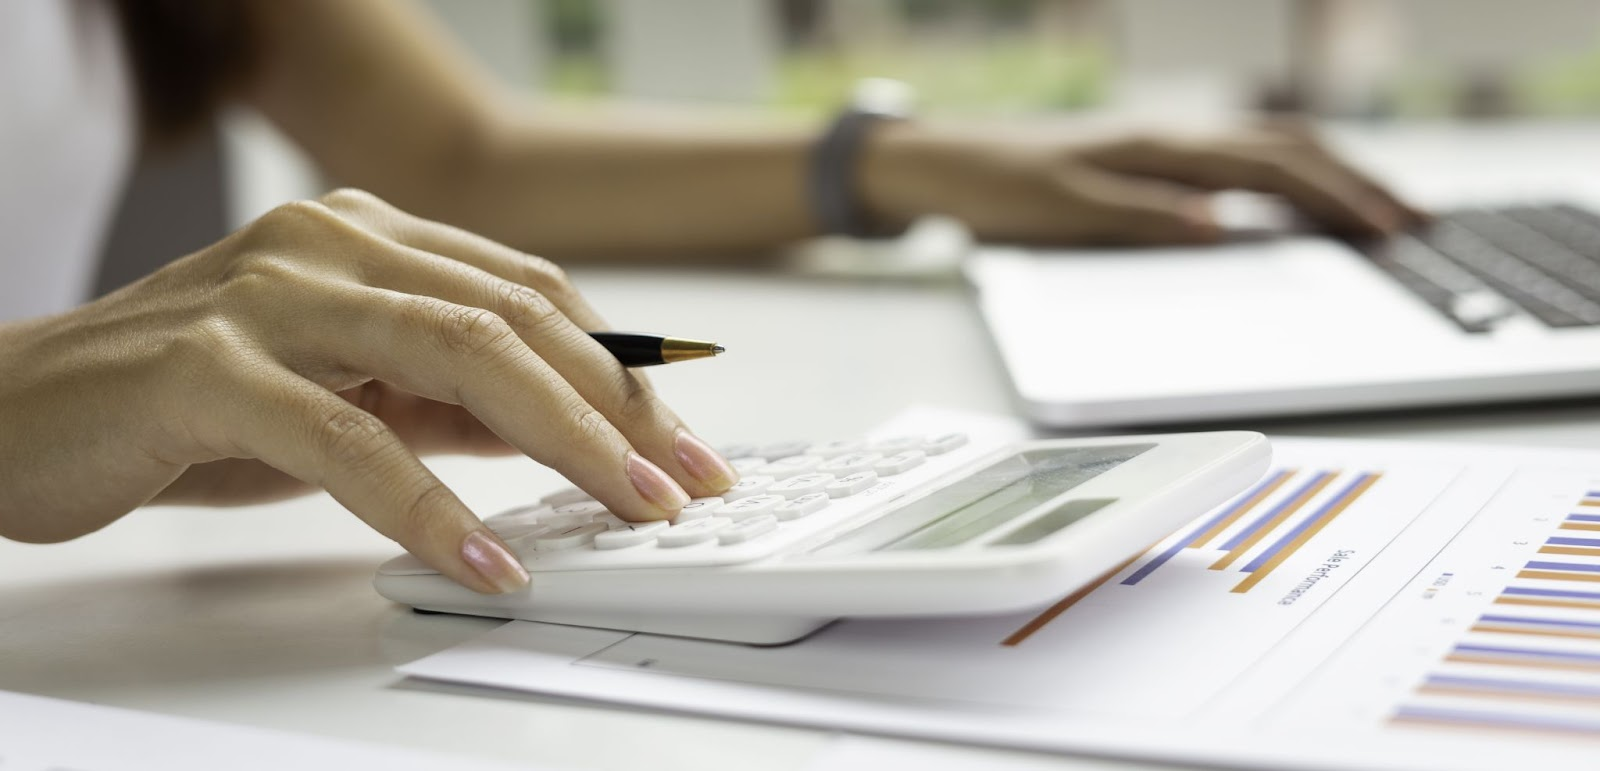 Woman working using a laptop and a calculator